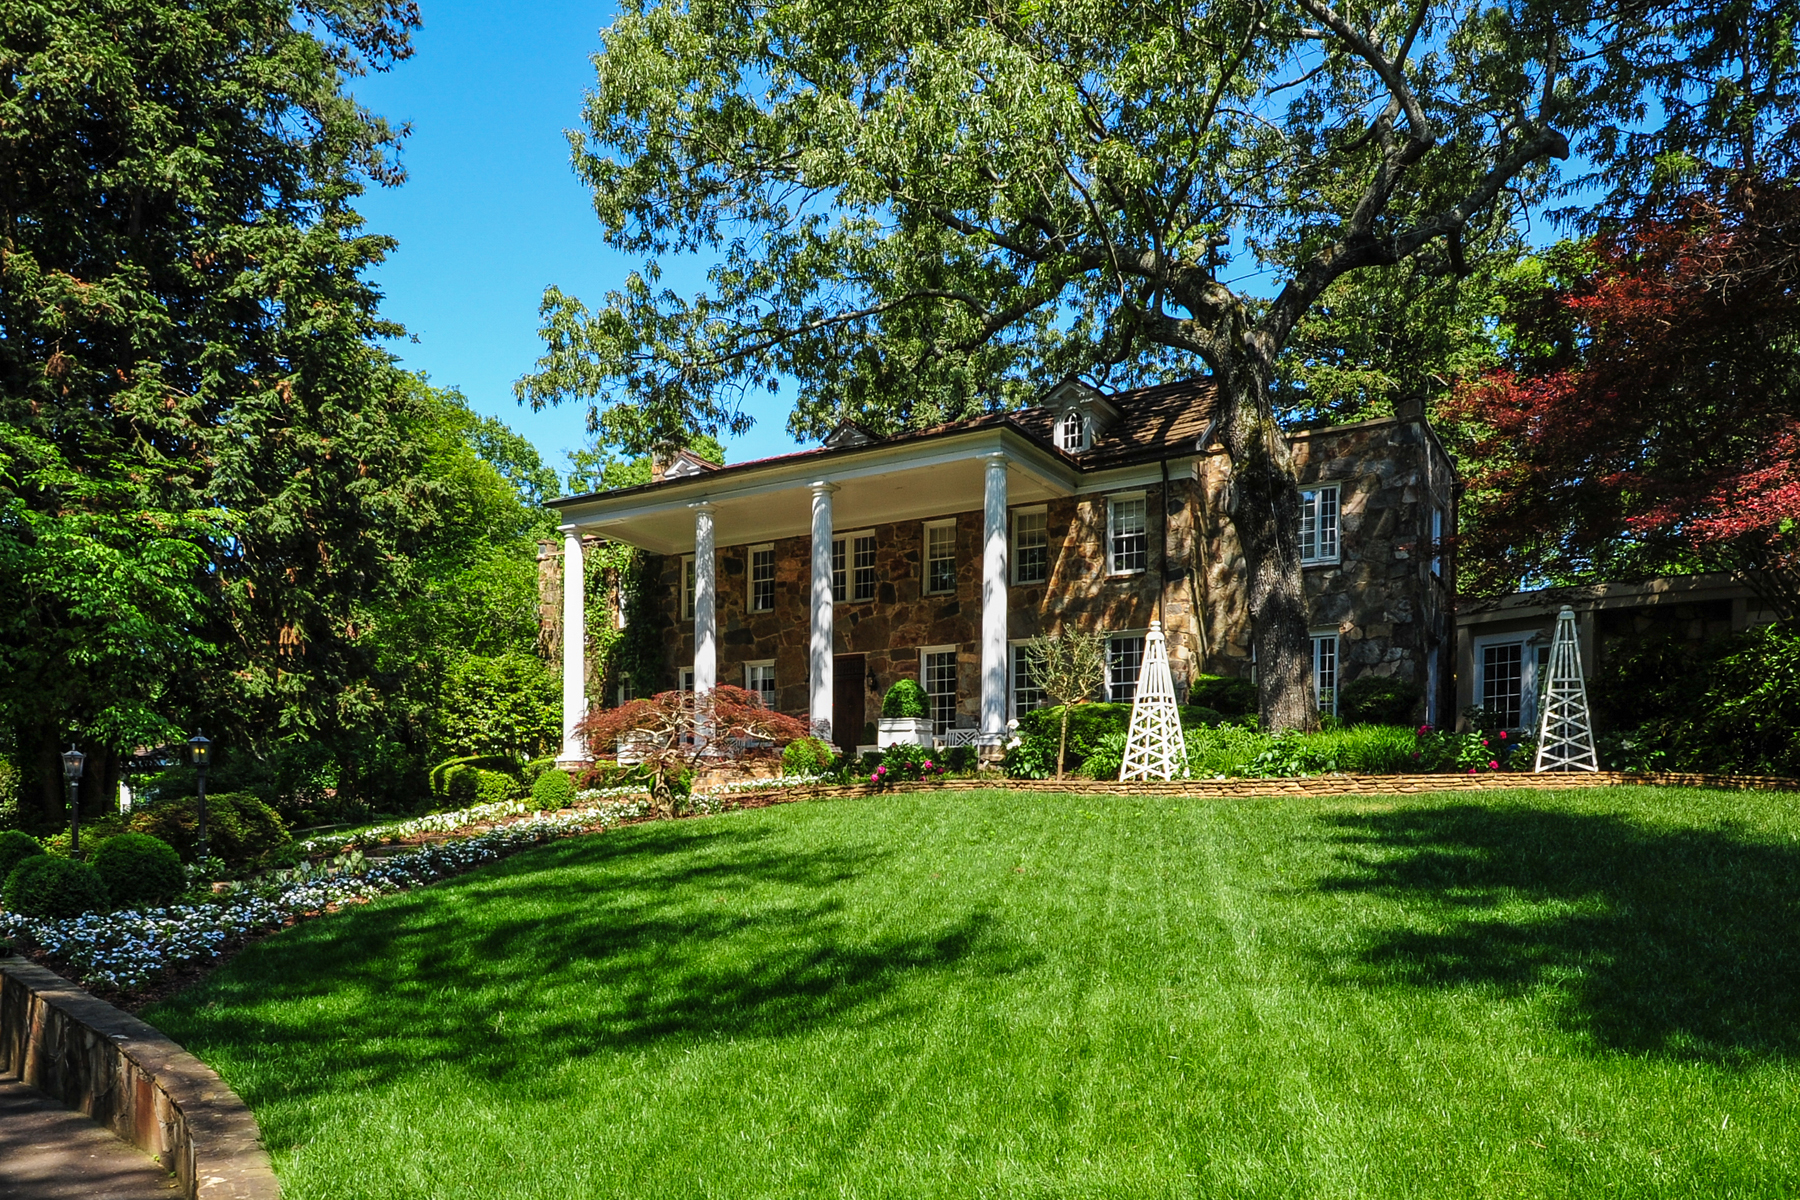 Villa per Vendita alle ore Custom Restoration, Award Winning Gardens 1295 Heards Ferry Road NW Sandy Springs, Georgia 30328 Stati Uniti